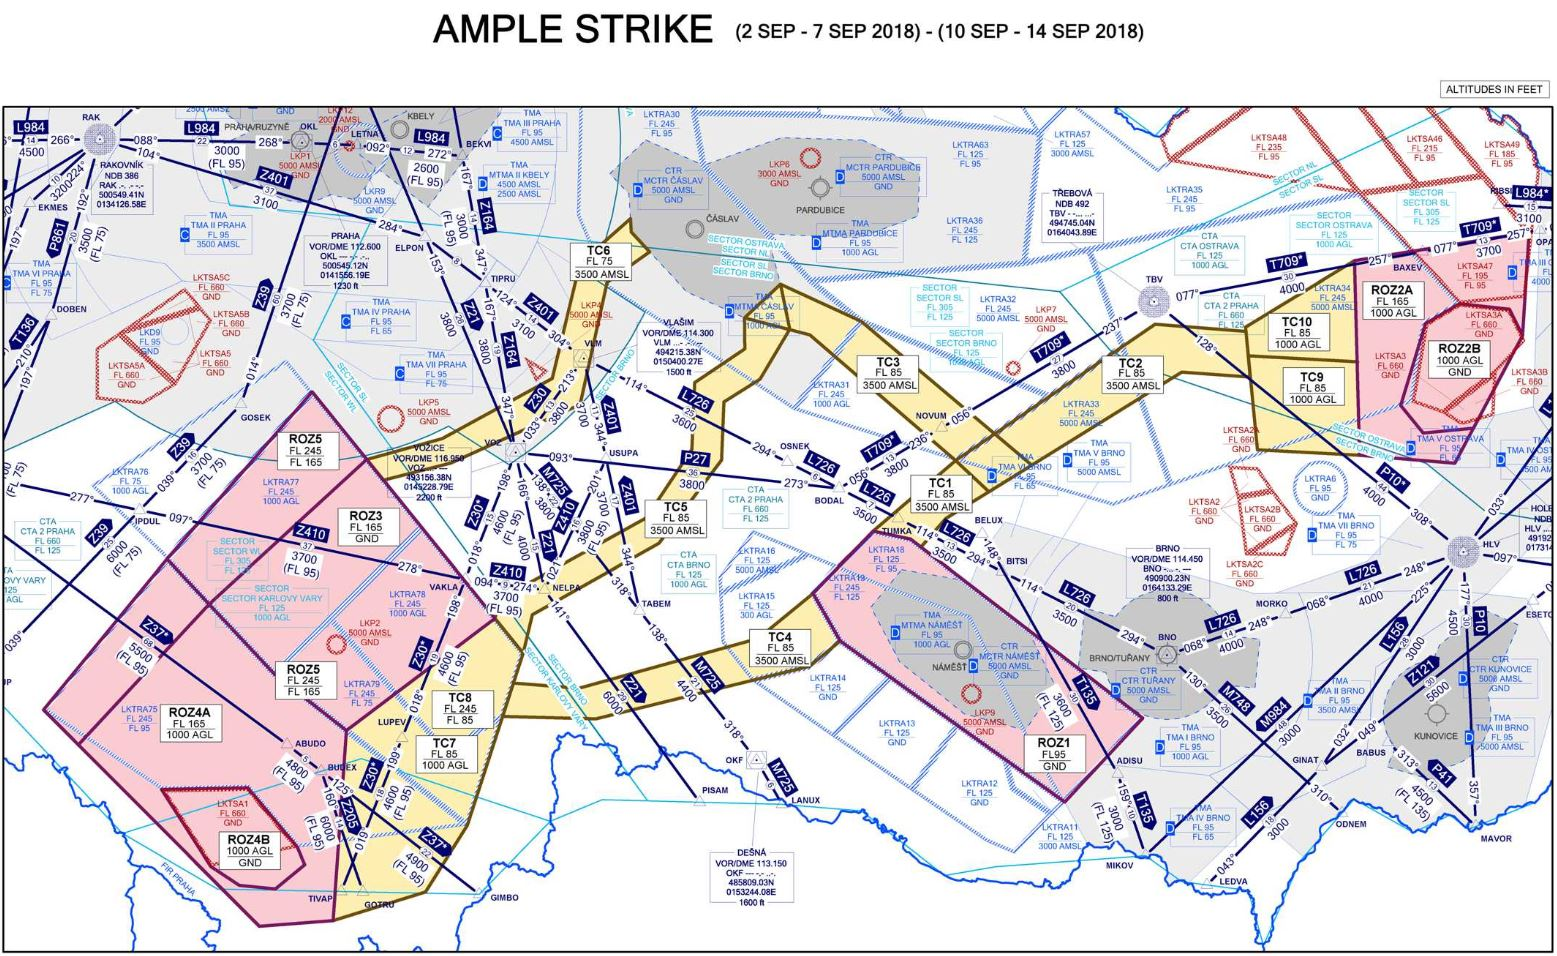 Ample Strike 2018